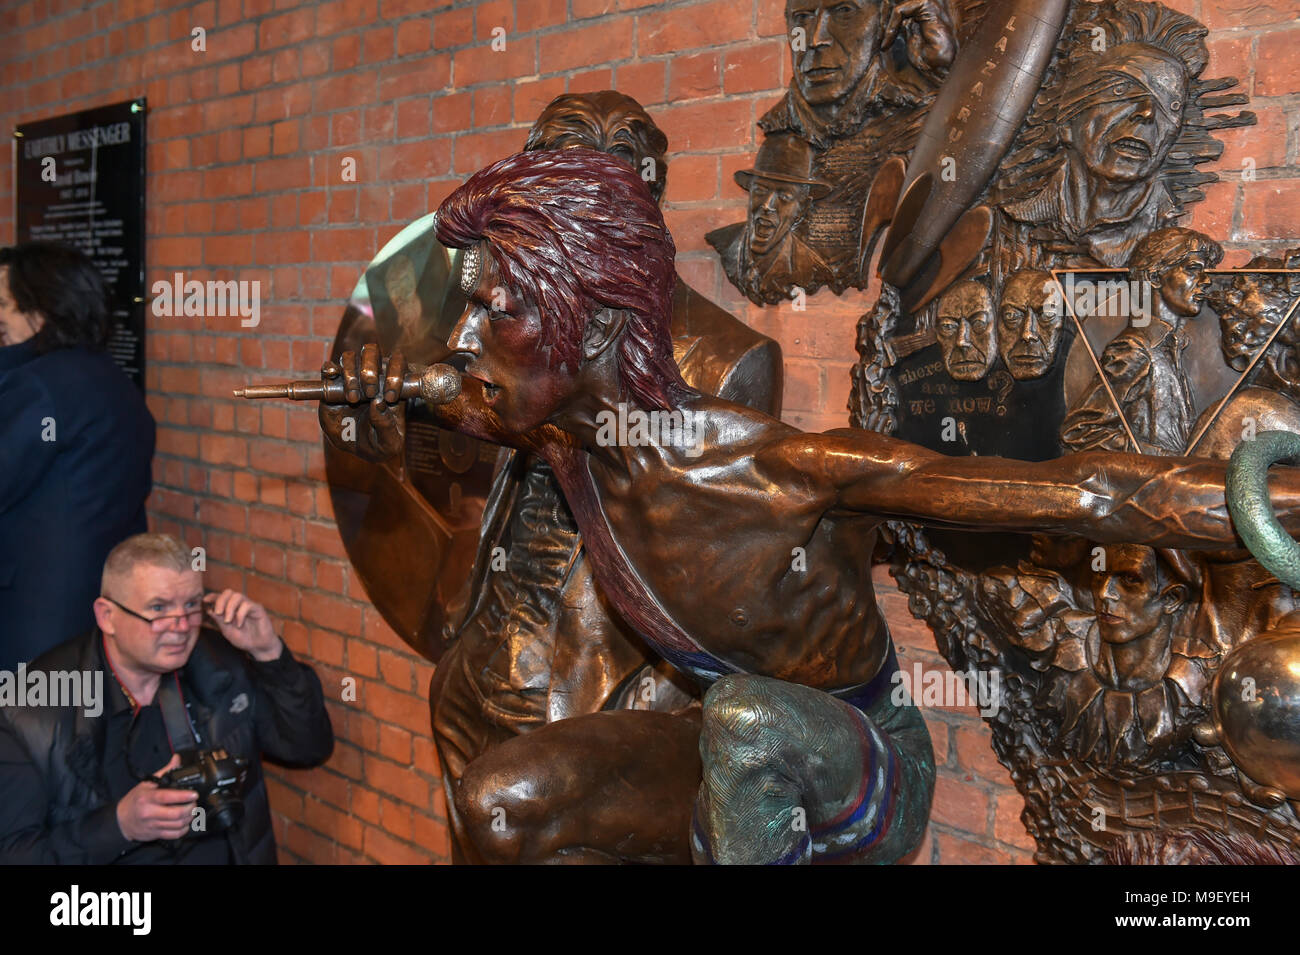 Aylesbury, United Kingdom. 25 March 2018. A David Bowie statue has been unveiled in Aylesbury. The statue was conceived by David Stopps who raised the £100,000 to complete the project. The sculptor, Andrew Sinclair, was also at the unveiling.    Credit: Peter Manning/Alamy Live News - Stock Image